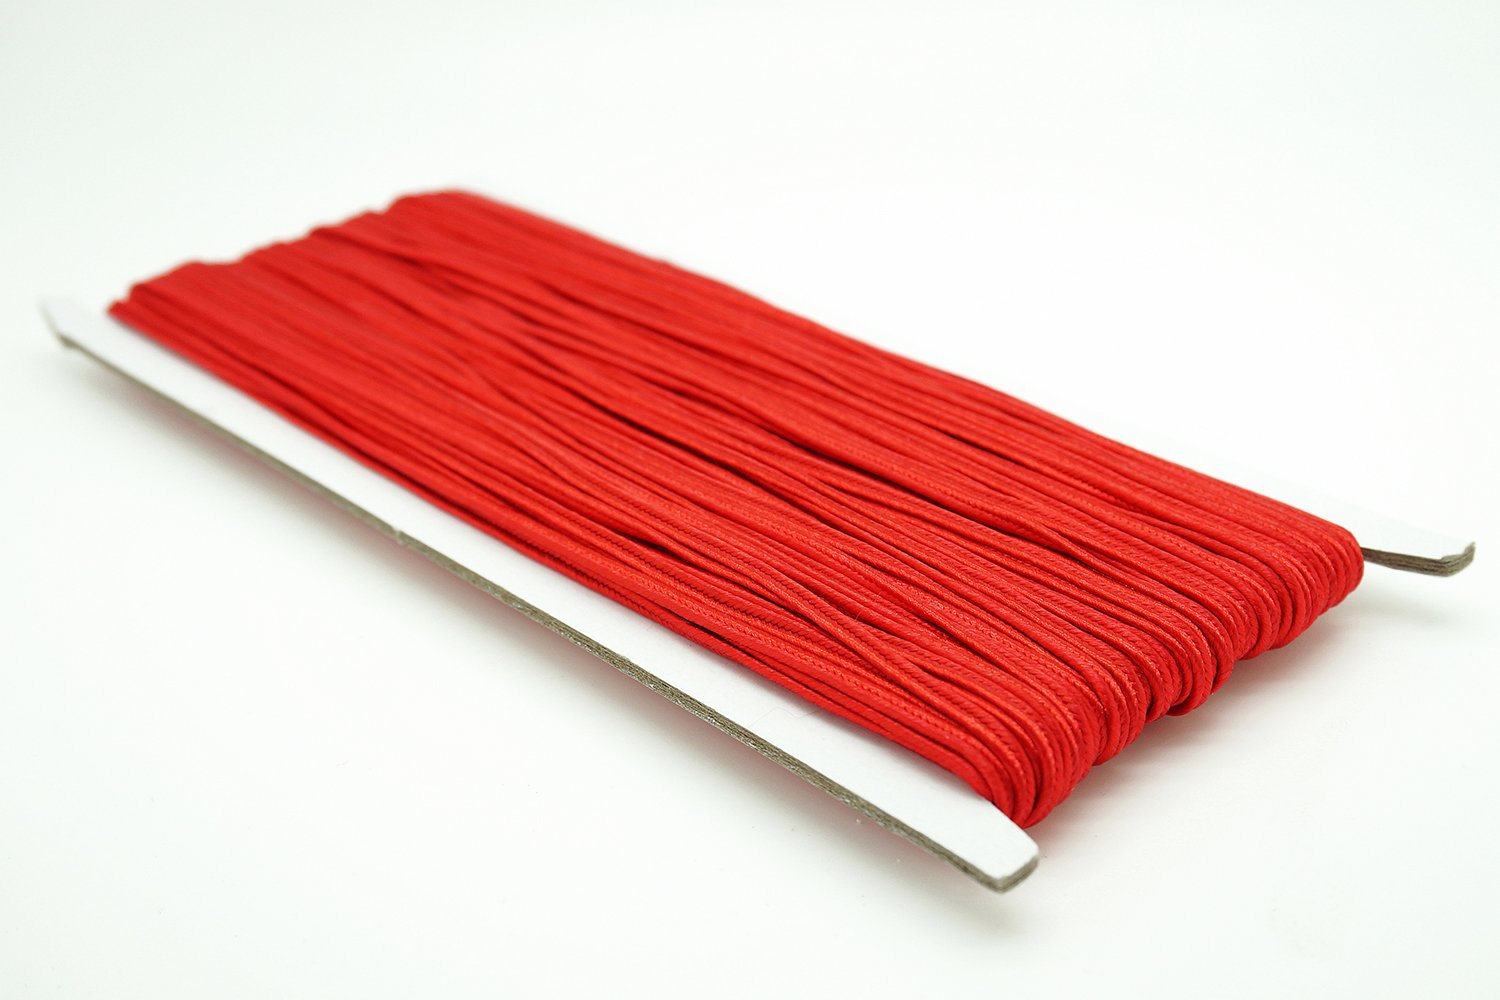 RED 3mm Polyester Soutache Braid Cord String Beading Sewing Quilting Trimming - 30 Yards